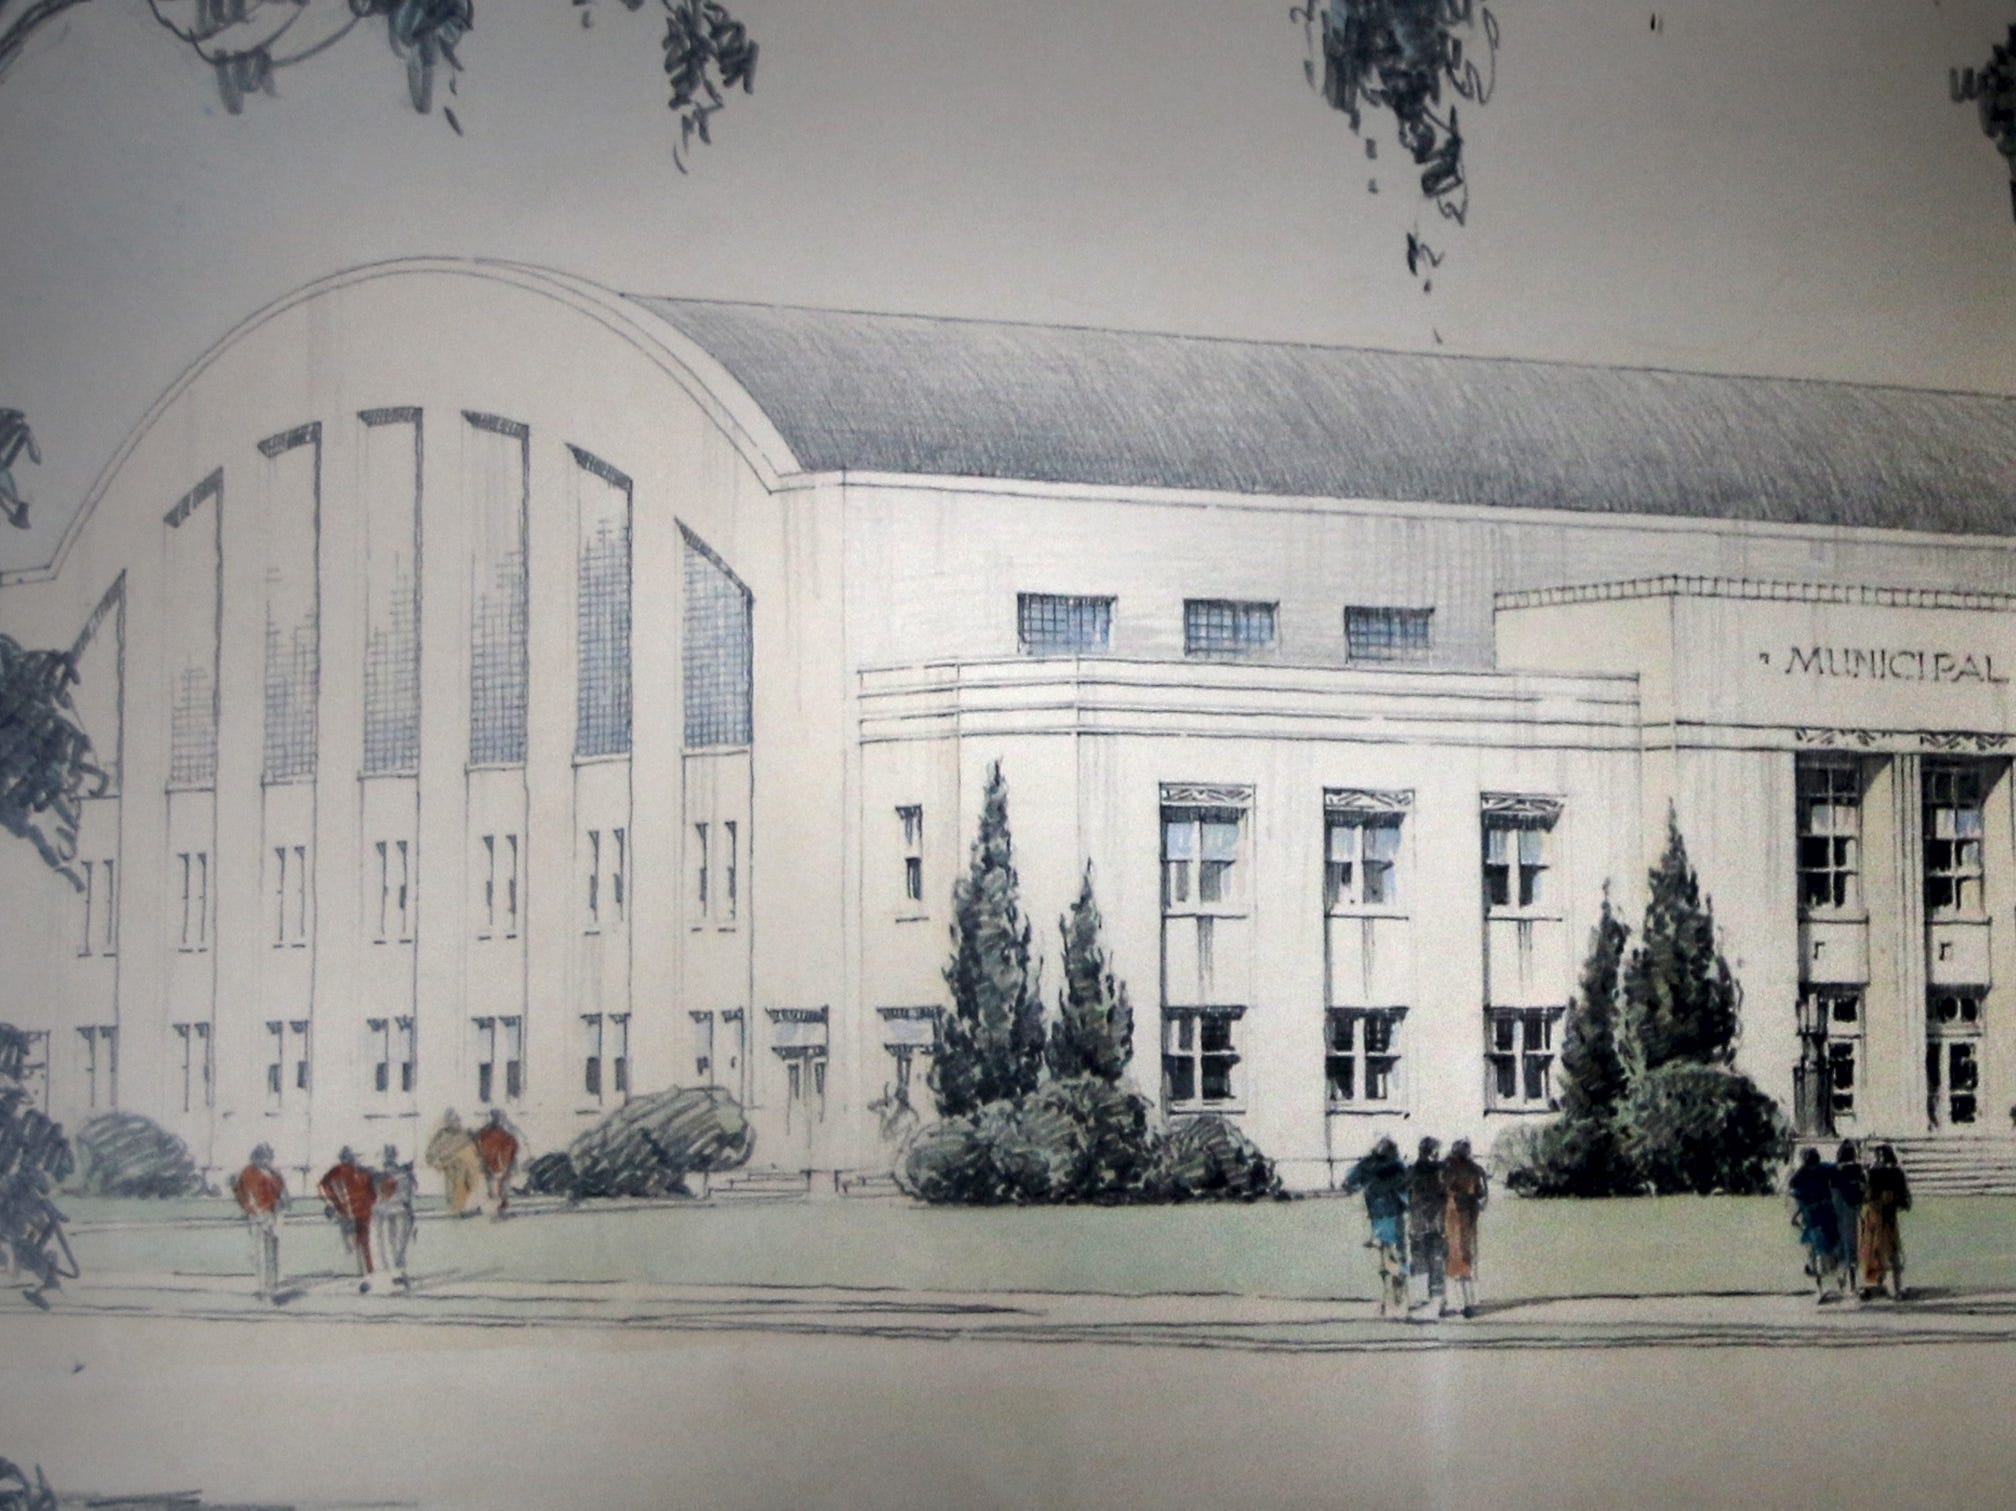 An artist's rendering of the Sheboygan Armory that has hung in the building for many years as seen Wednesday January 15, 2014 in Sheboygan, Wis.